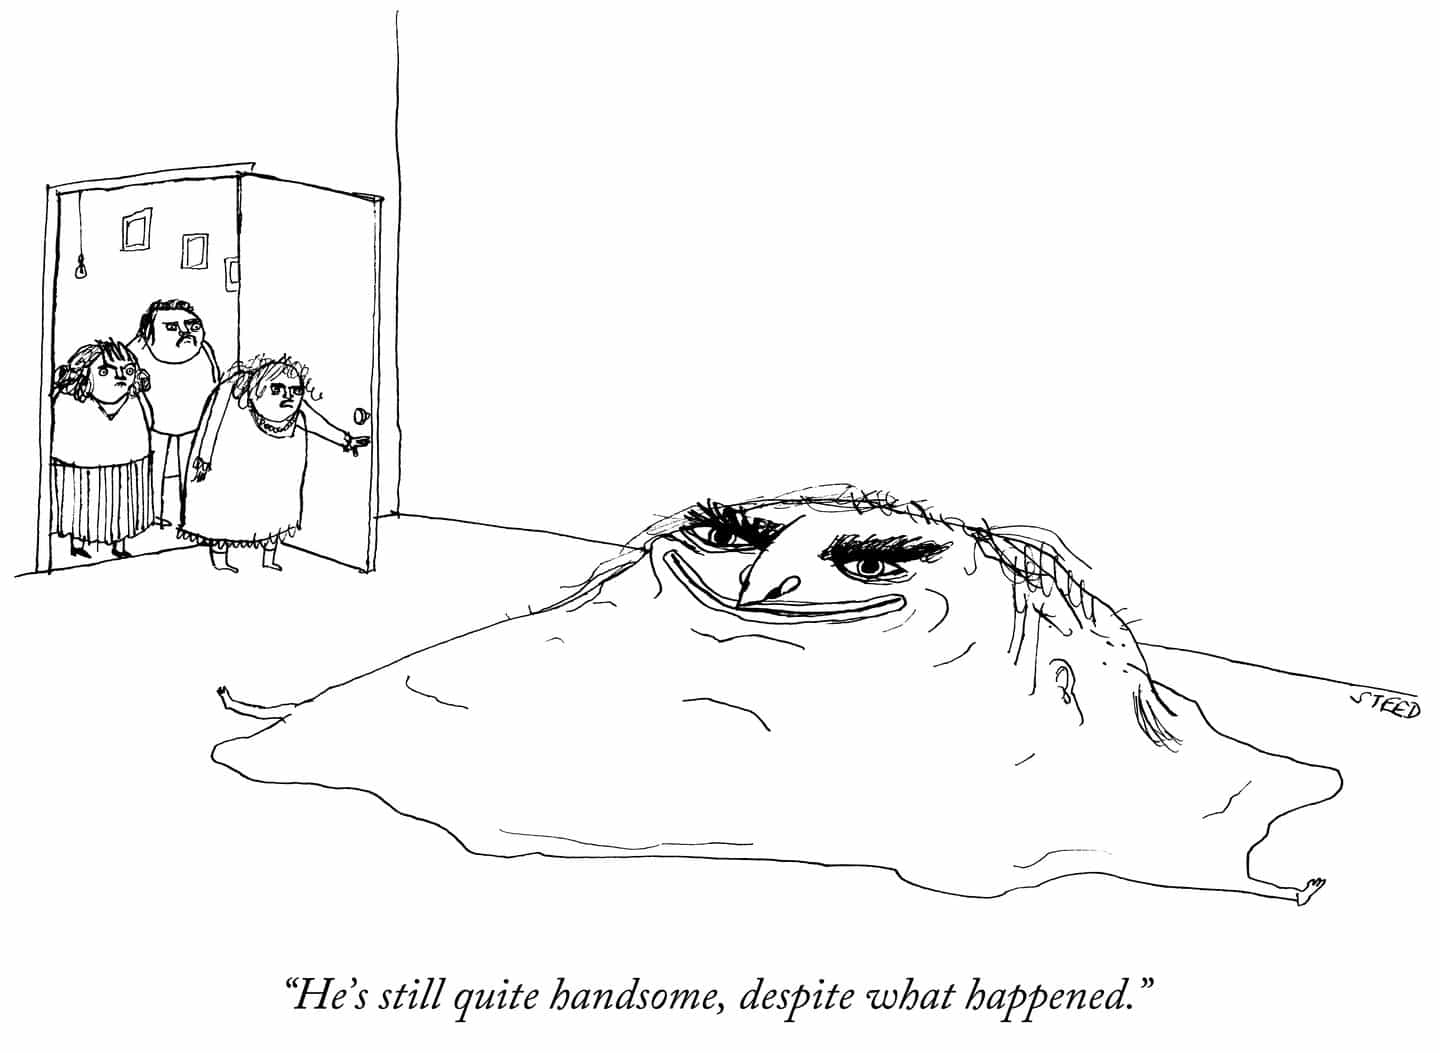 © Ed Corcel © The New Yorker